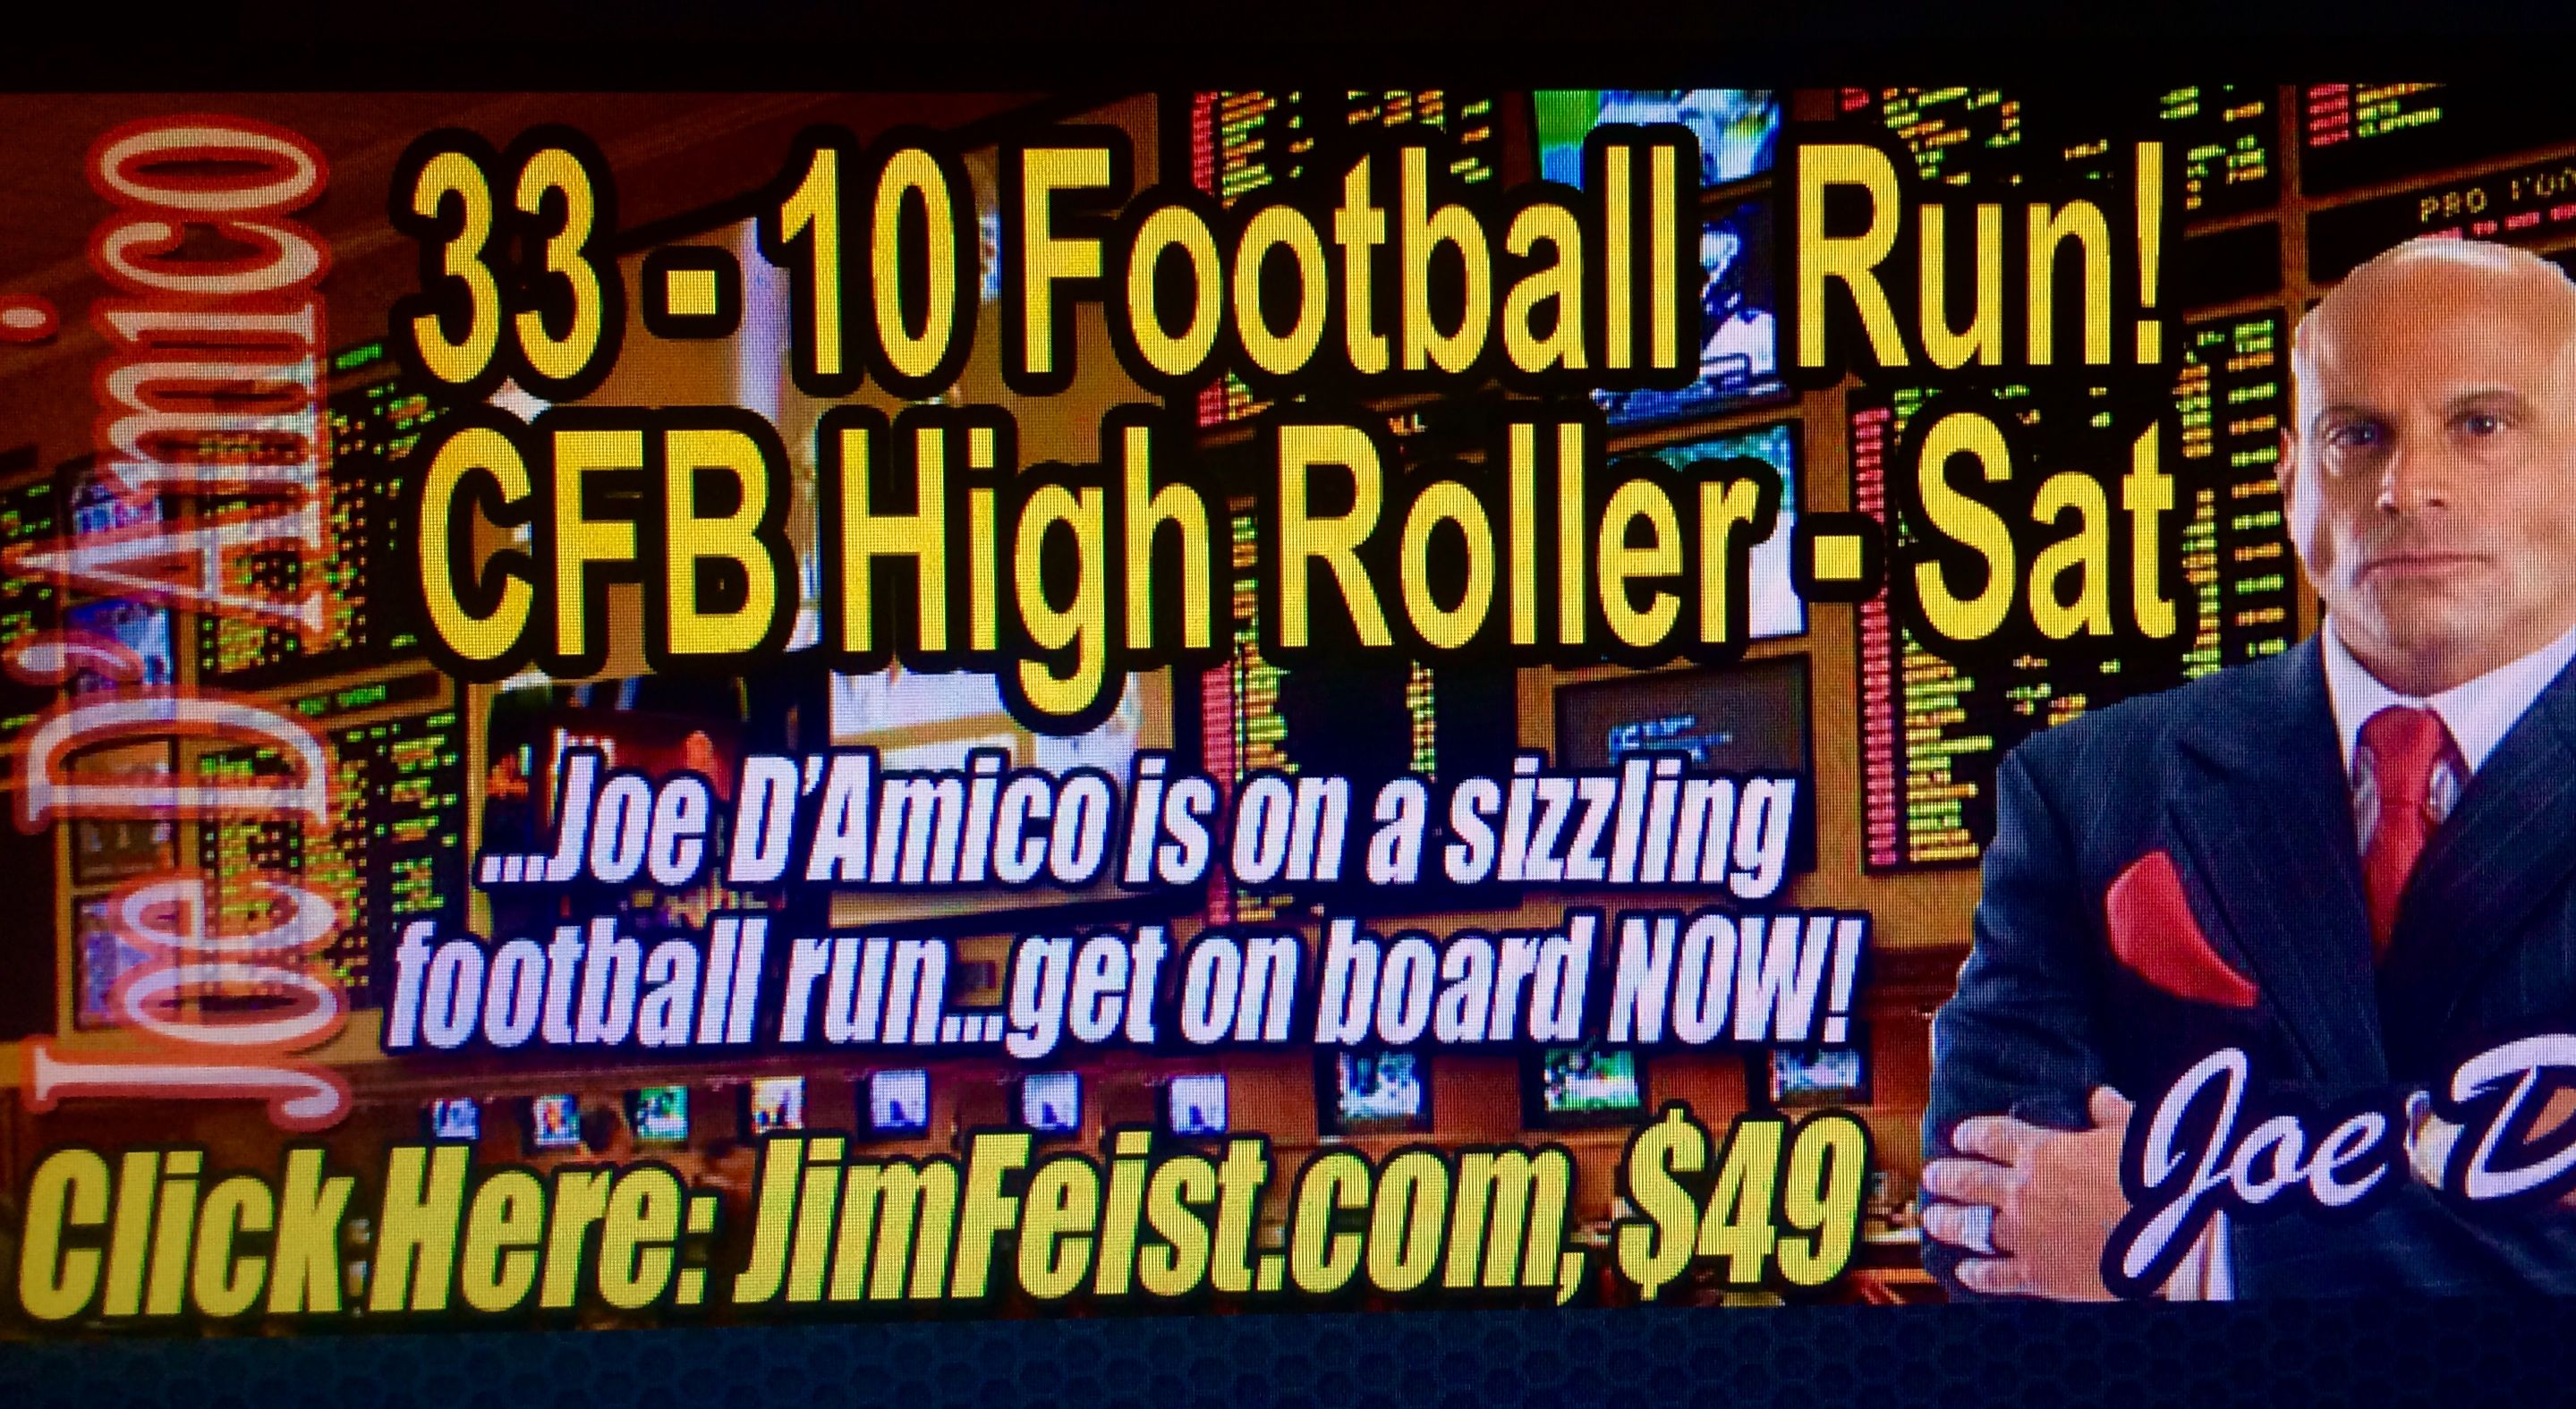 Joe D'Amico's Football is HOT, HOT, HOT as he is 3310 his